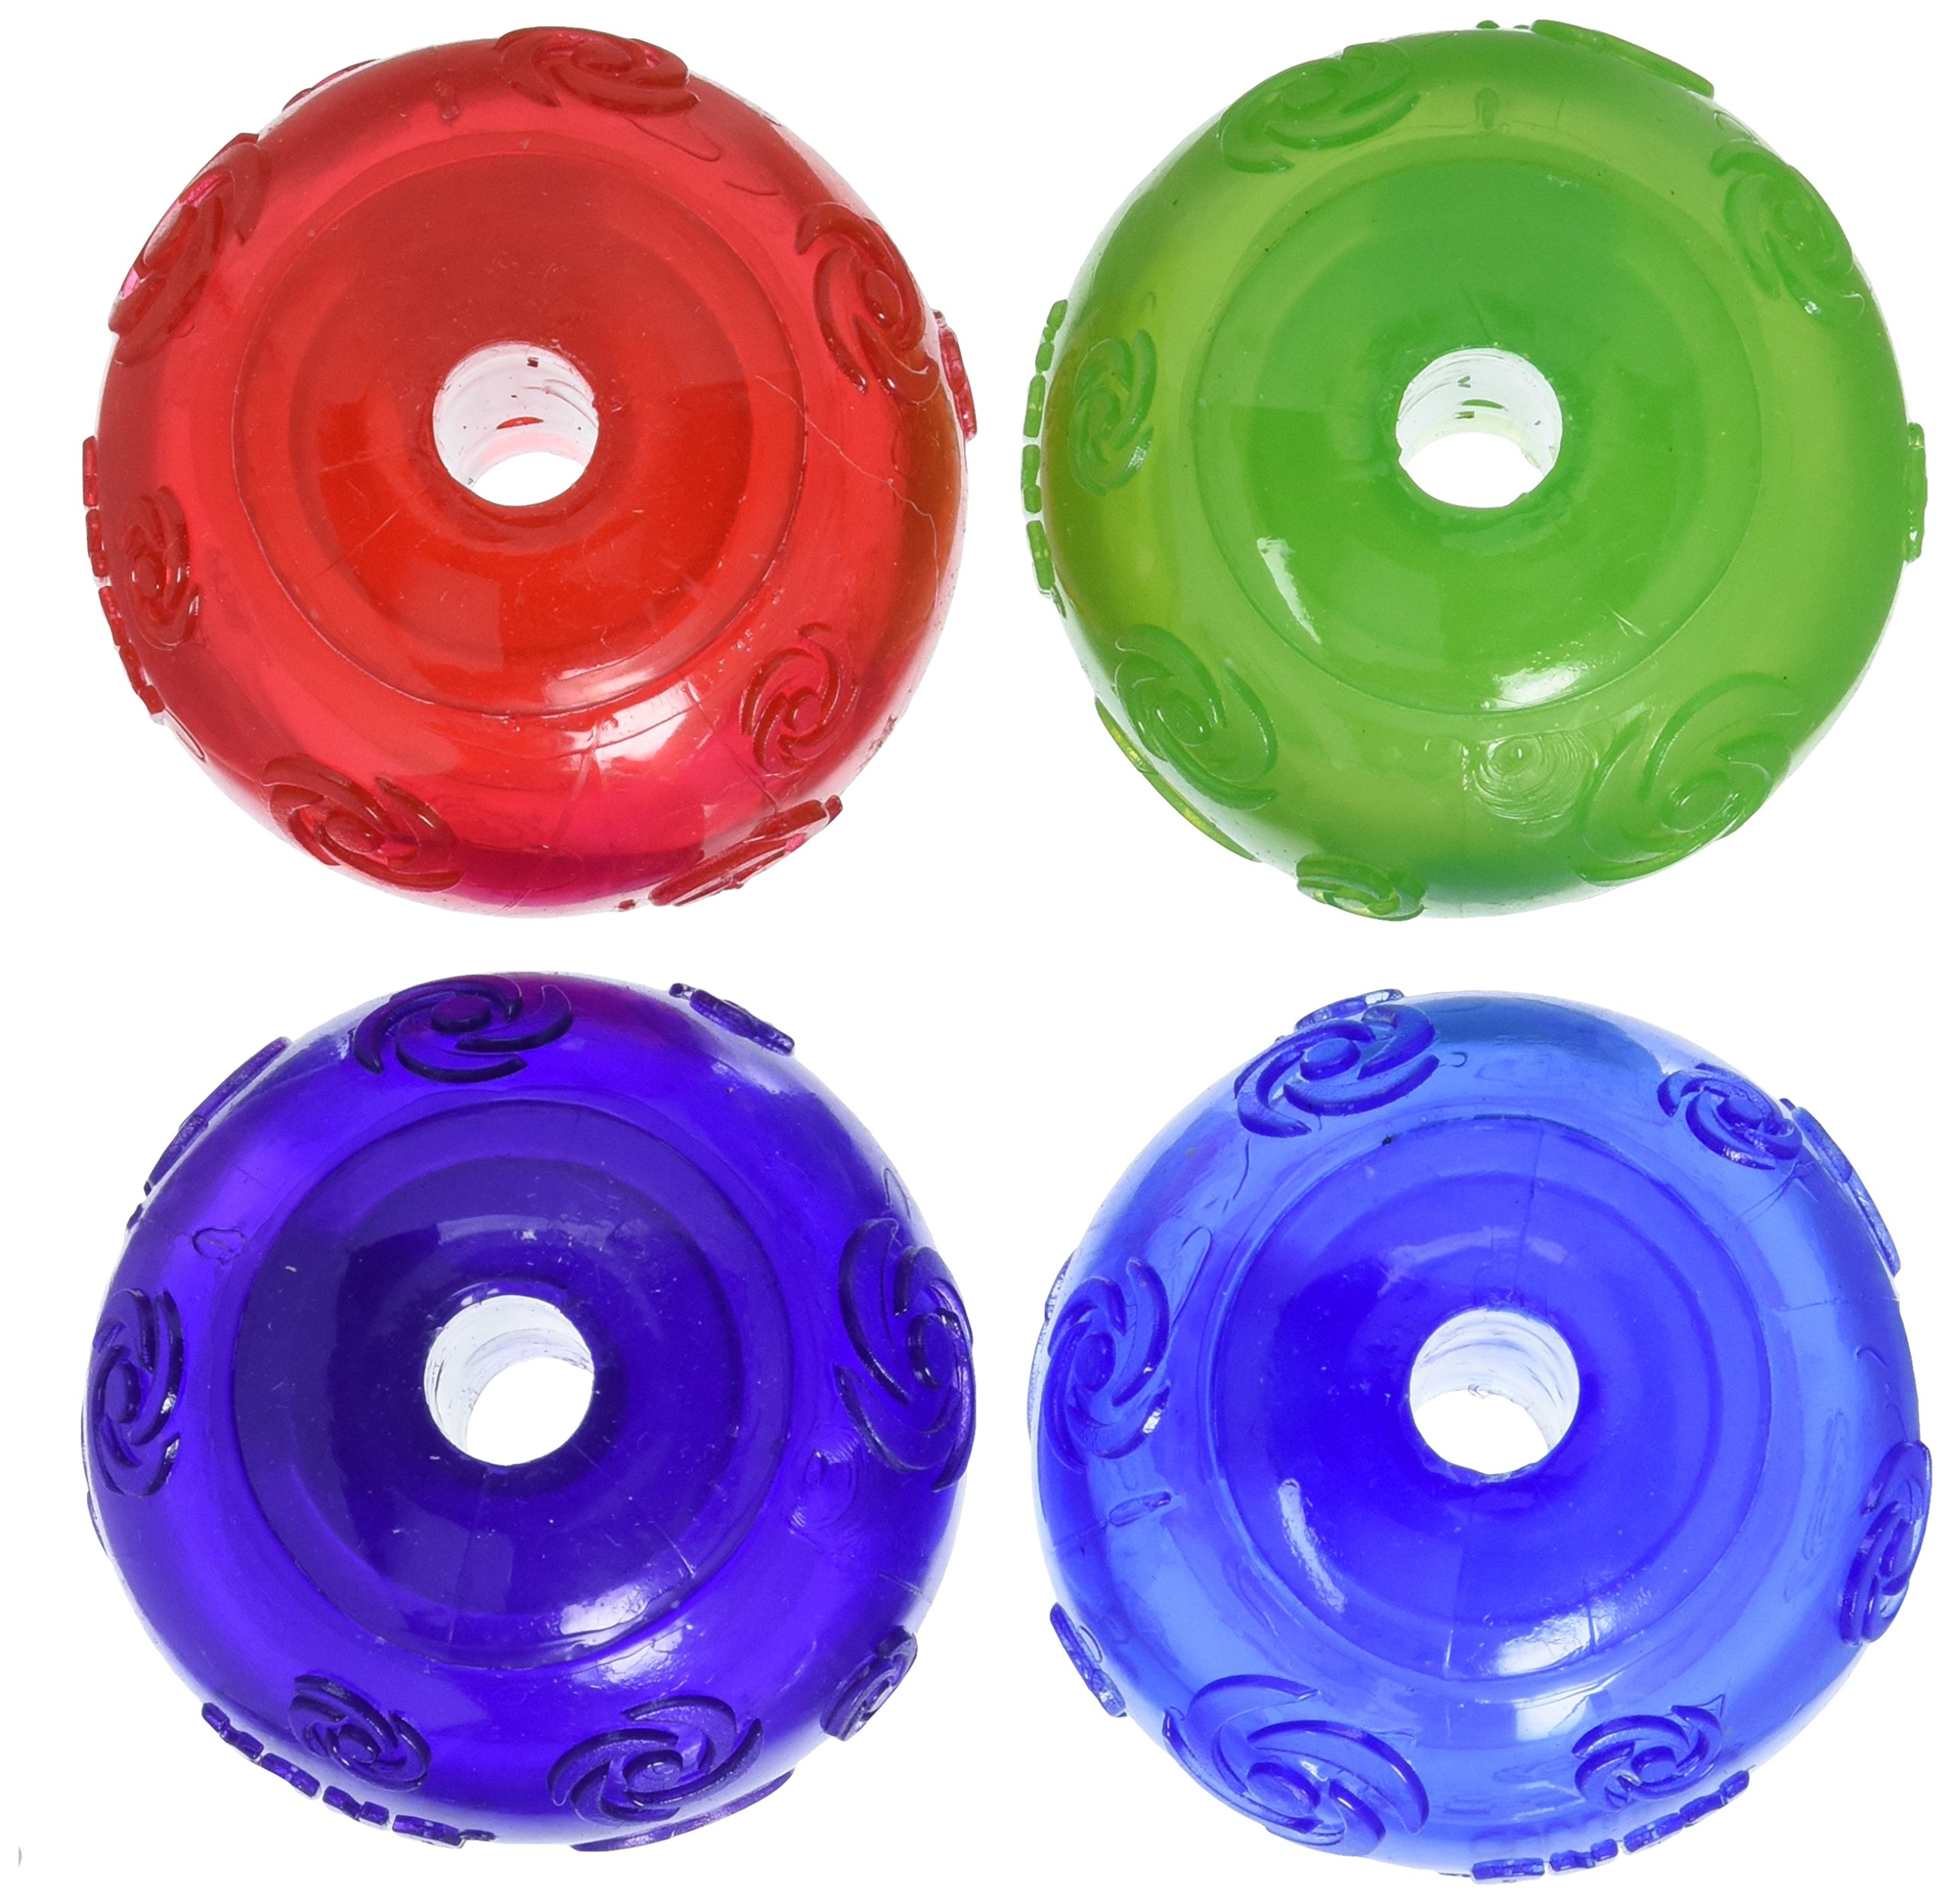 KONG Squeezz Ball Medium Assorted Colors Green, Red, Blue, Purple 4pk by KONG